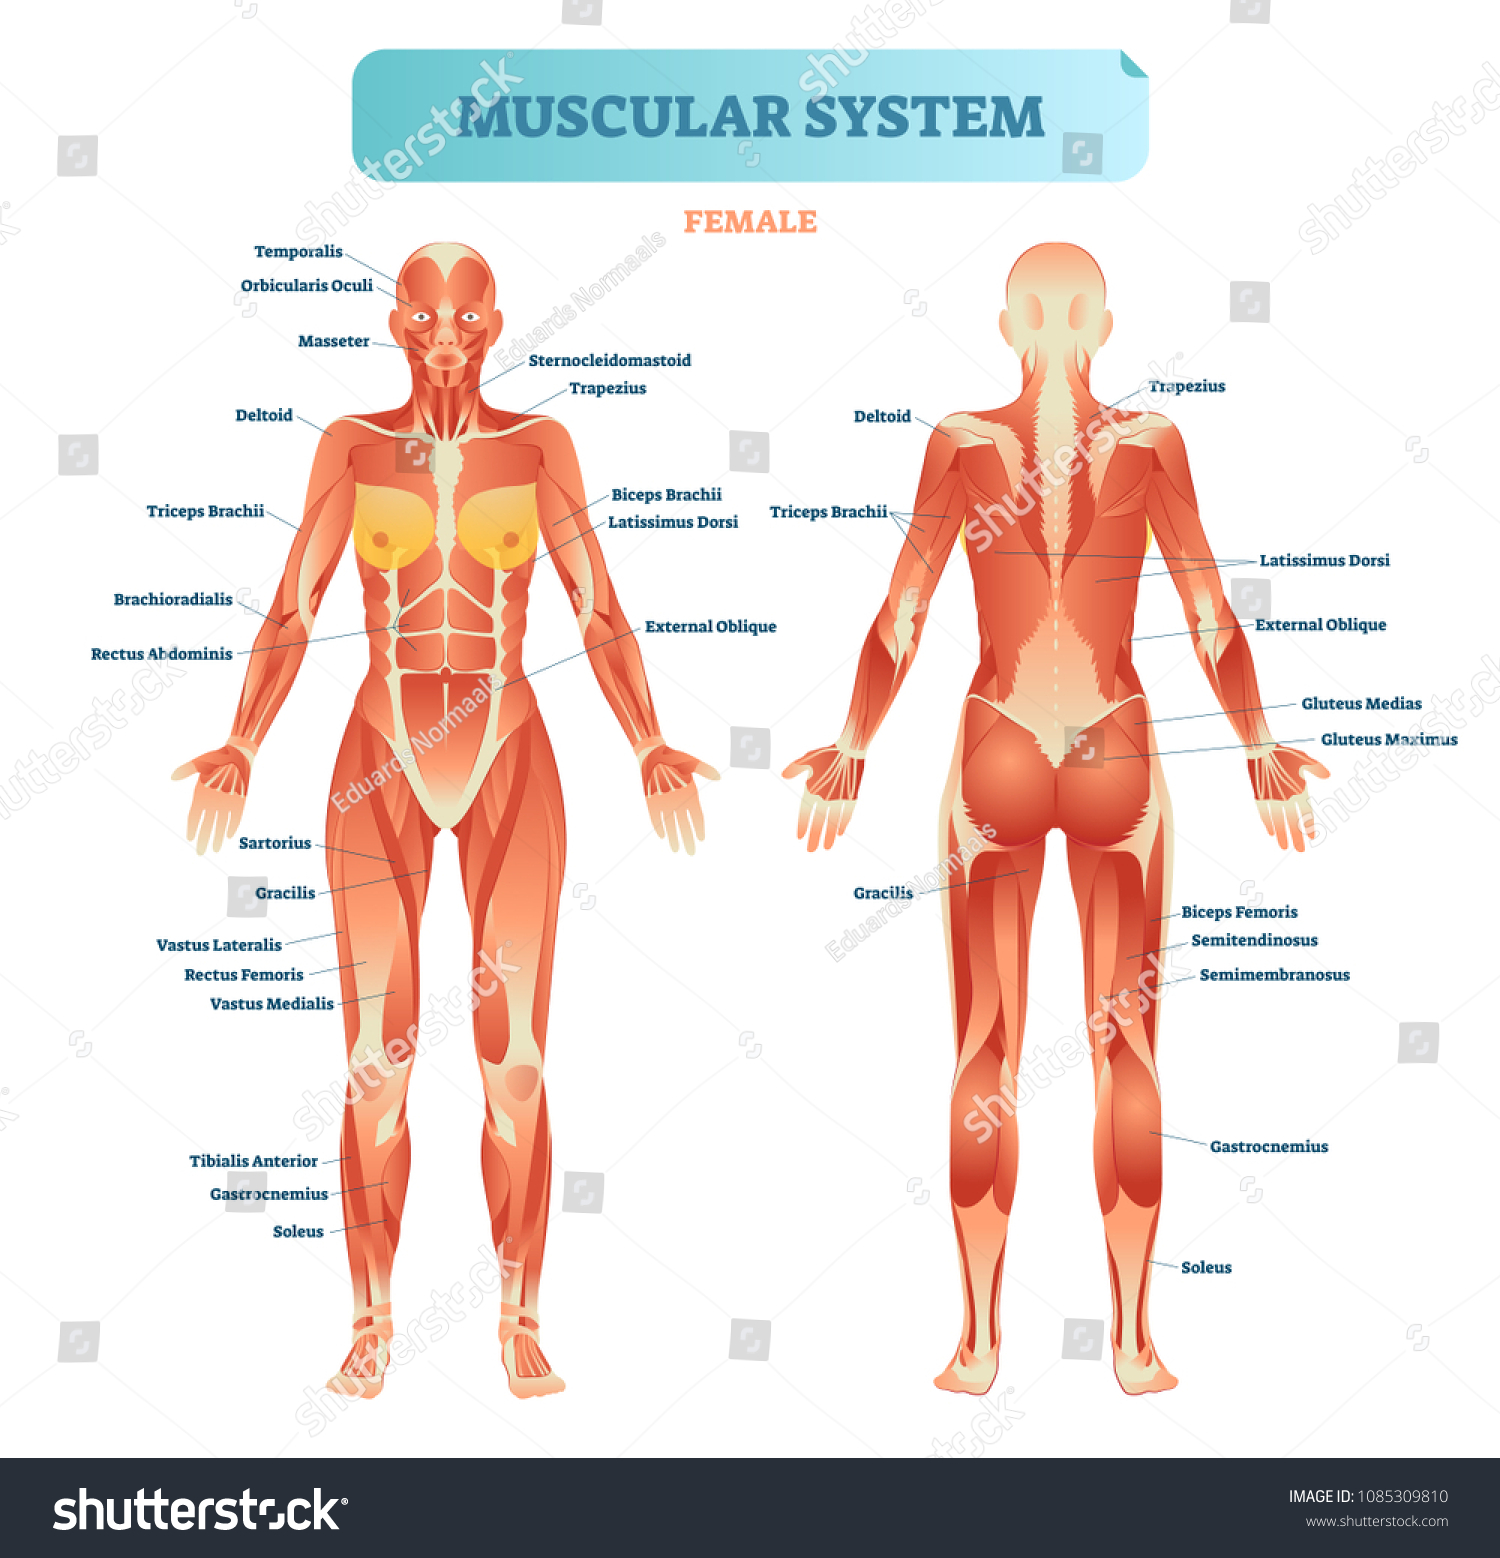 Male Muscular System Full Anatomical Body Stock Vector Royalty Free